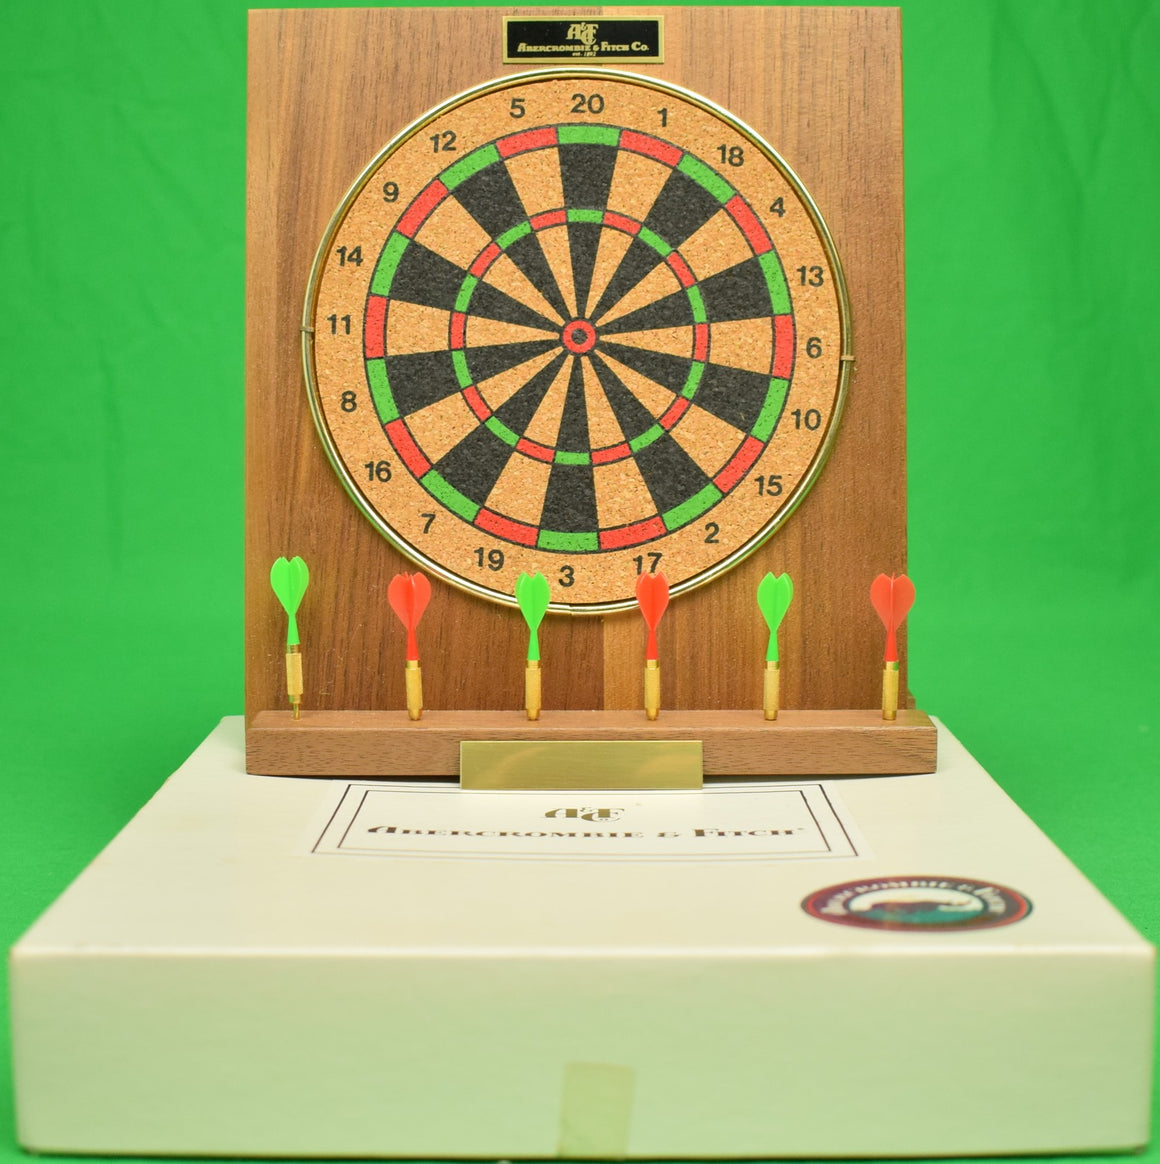 Abercrombie & Fitch Mini-Executive Dart Board (New in Box!)